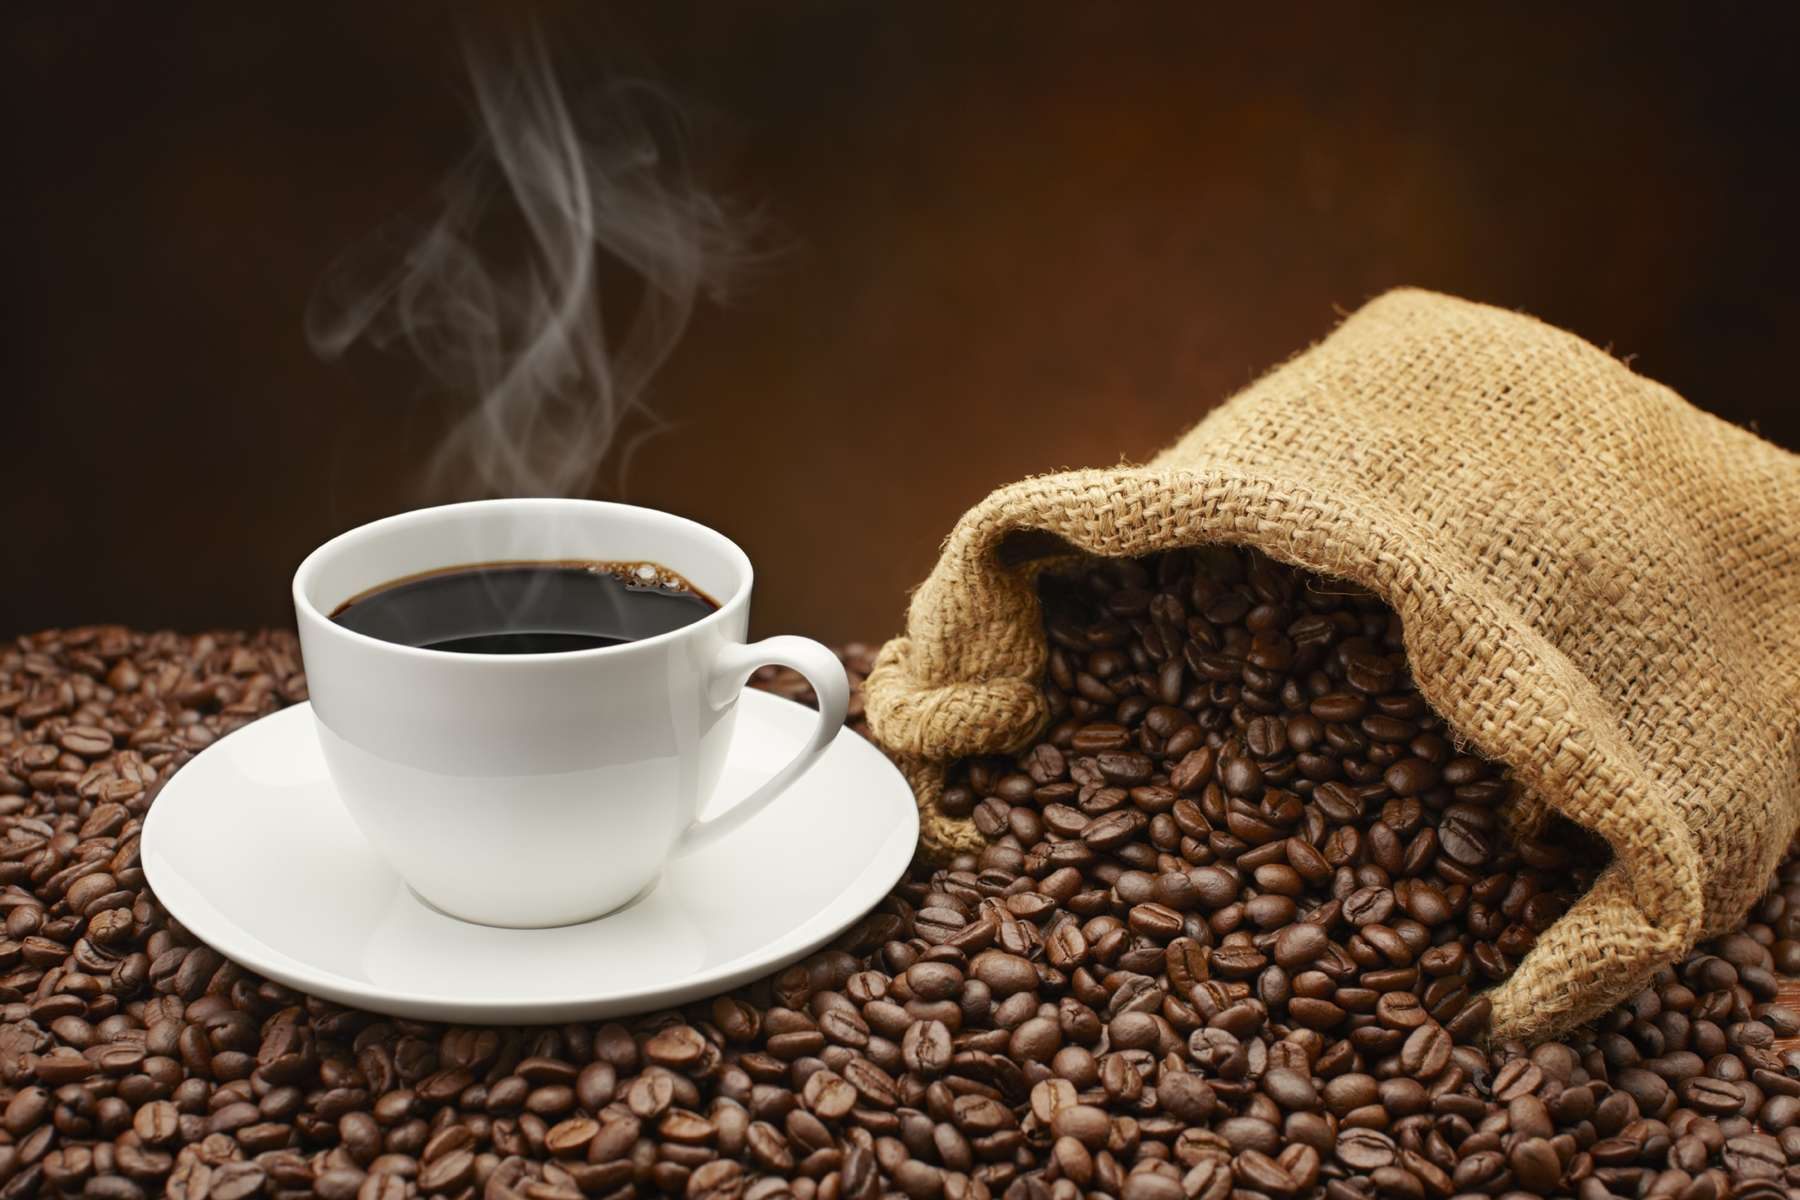 m Steaming-cup-of-coffee-on-pile-of-coffee-beans-000019447735_Large ...